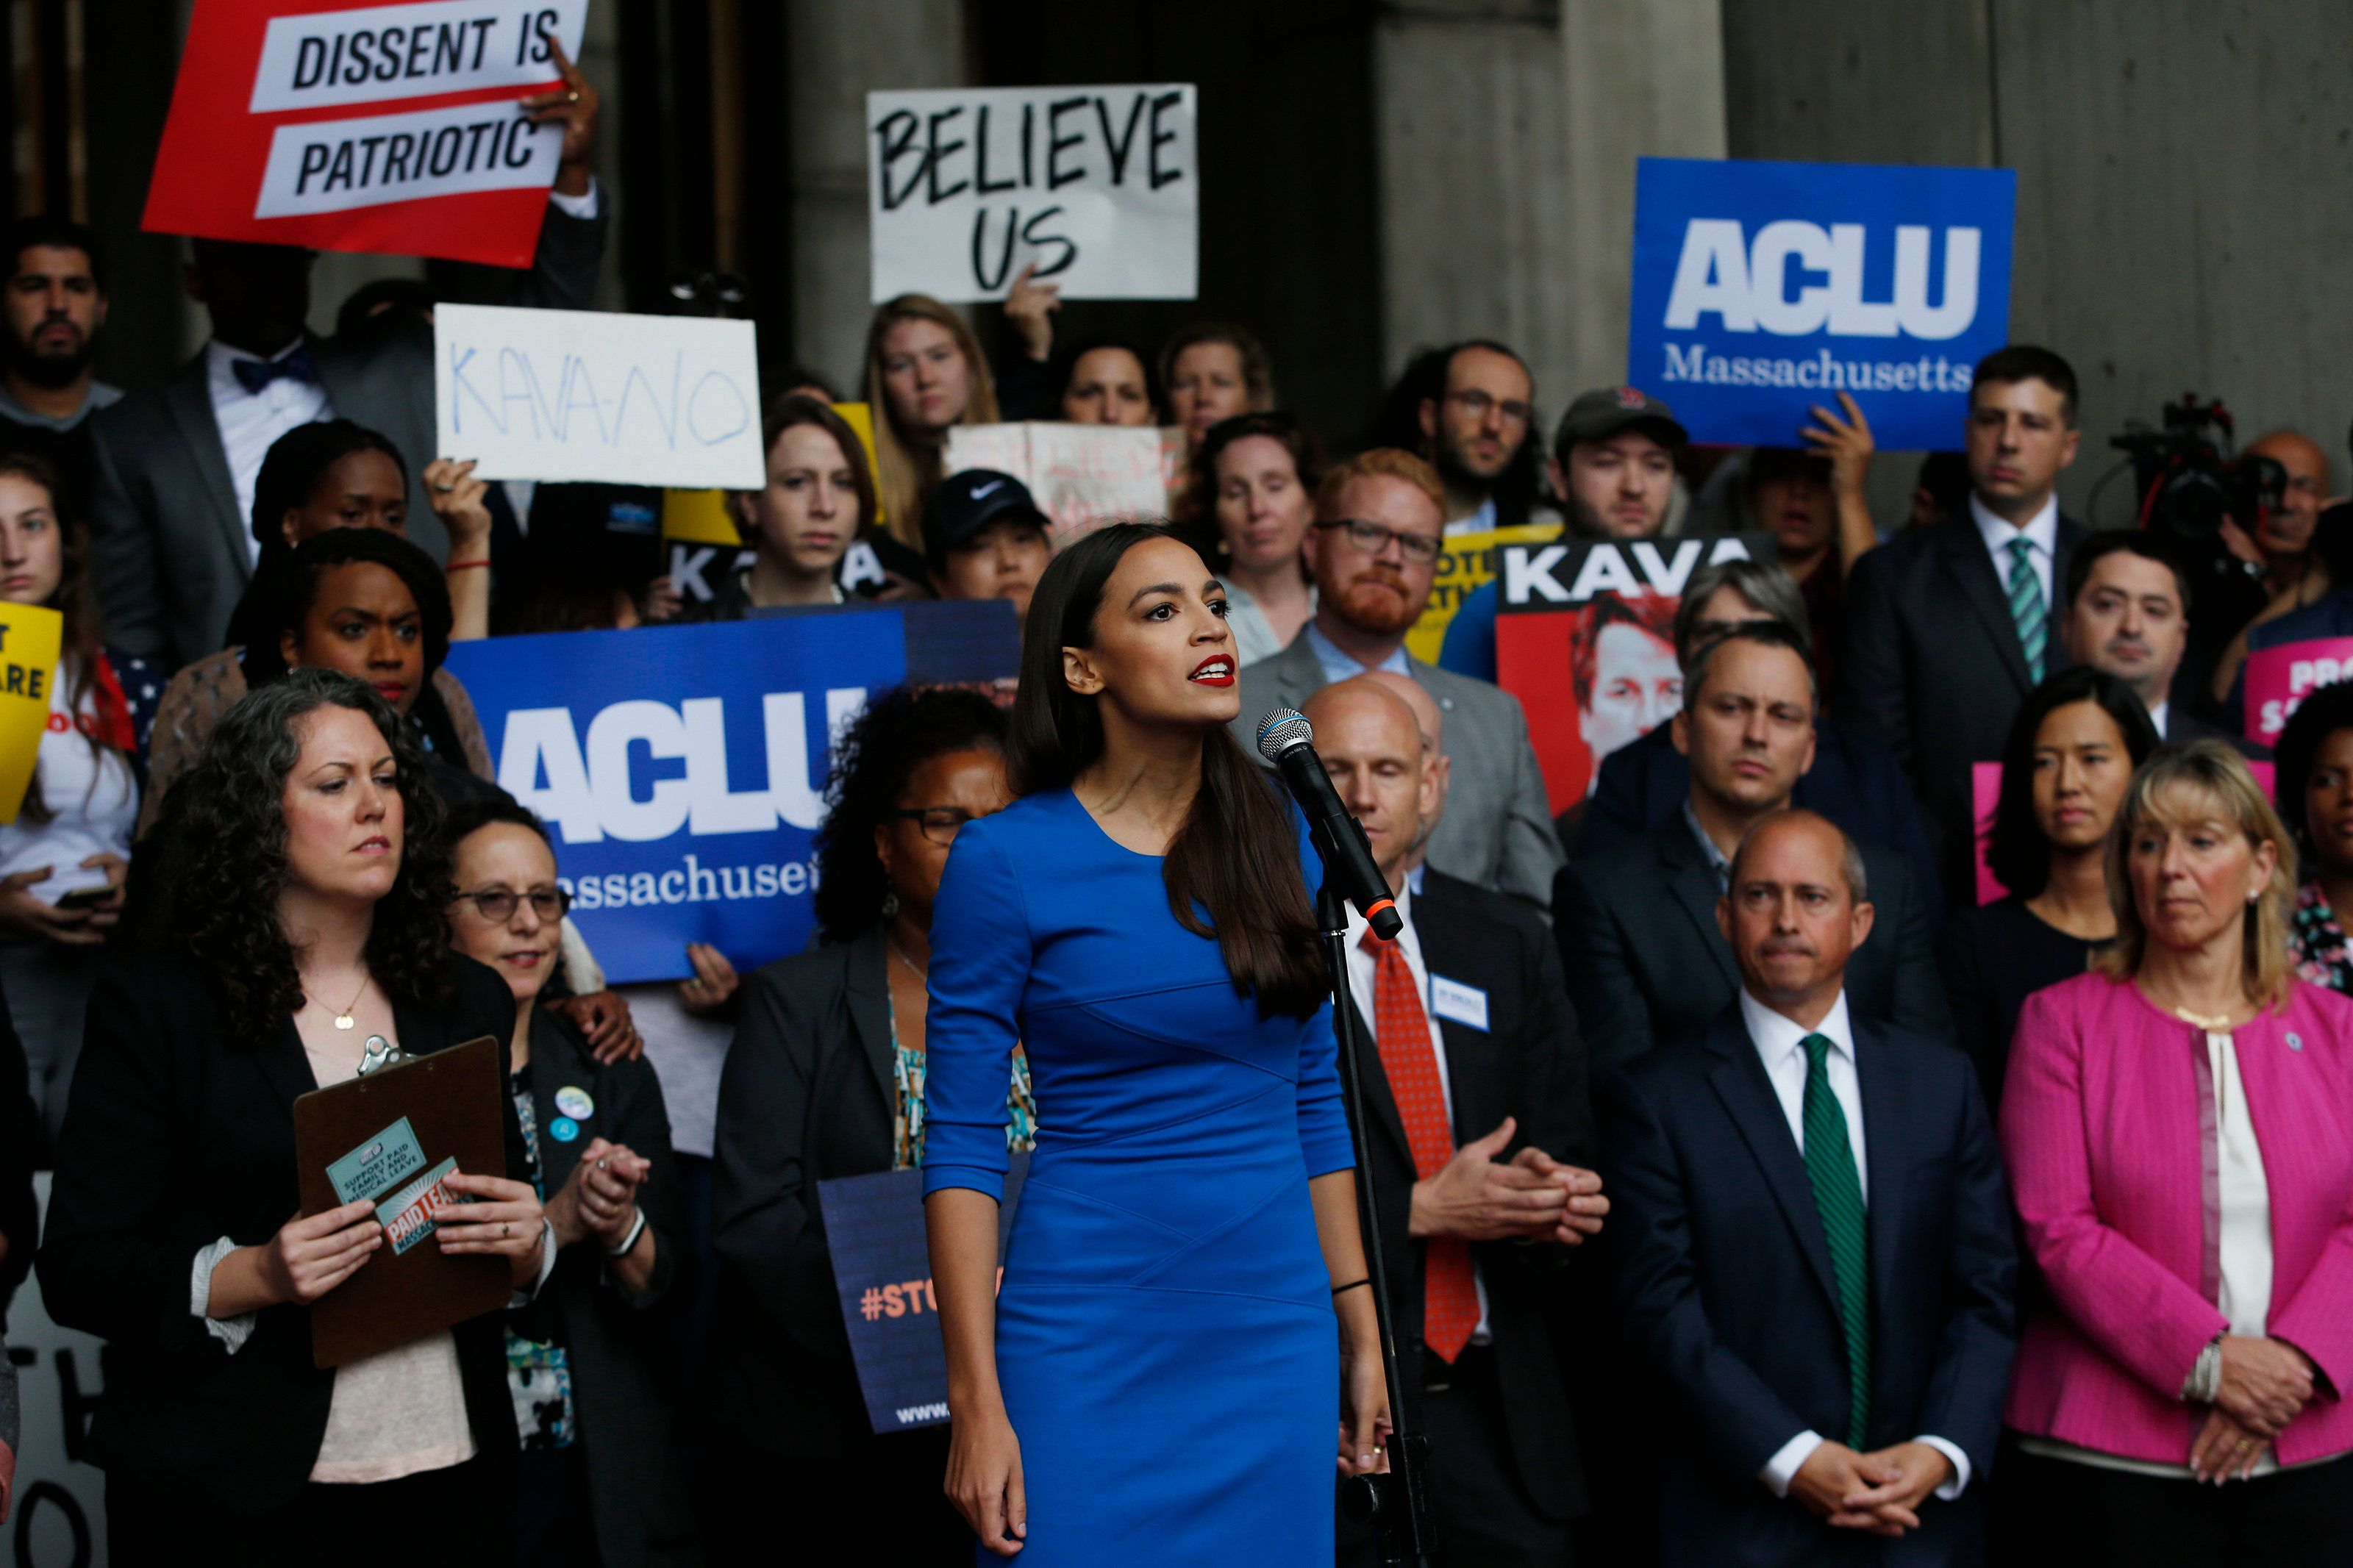 New York's Alexandria Ocasio-Cortez is youngest woman elected to Congress